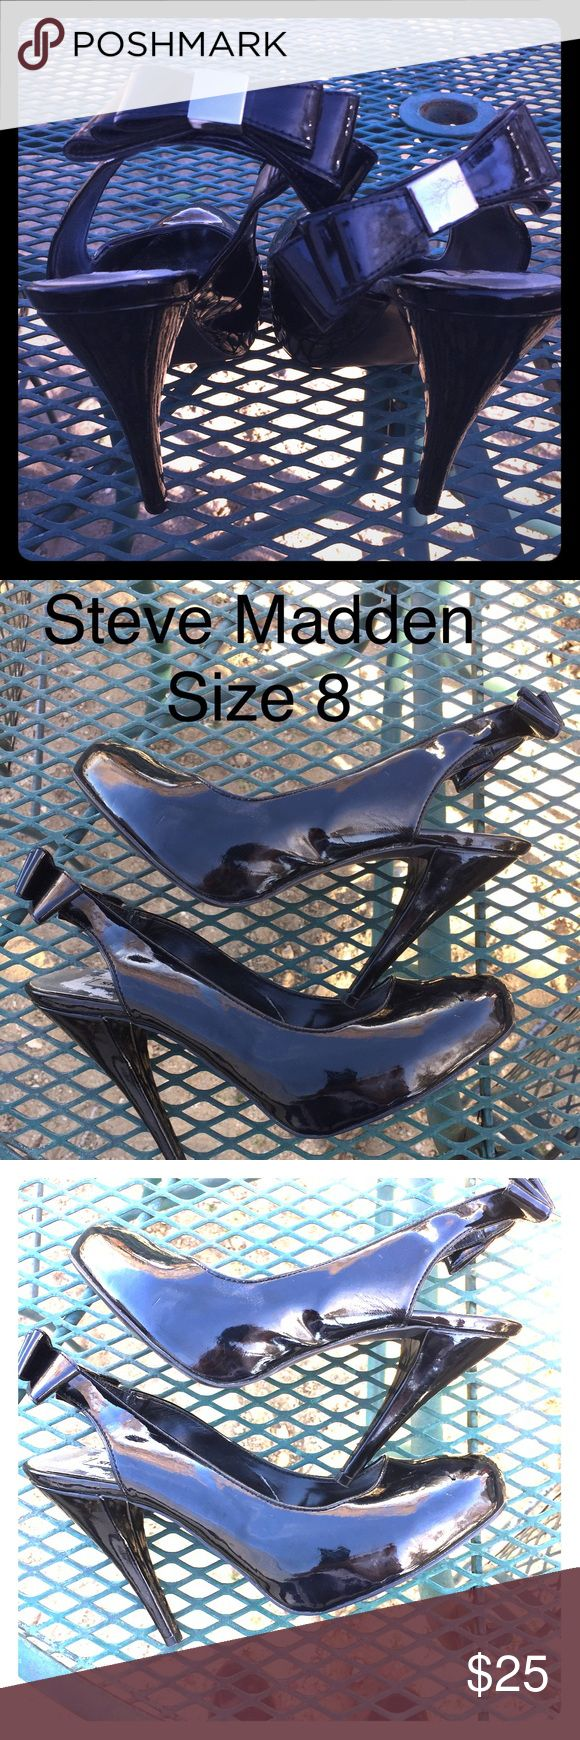 Steve Madden Black High Heels Steve Madden Black Patent Leather Heels with bows. Oh so cute!! Steve Madden Shoes Heels